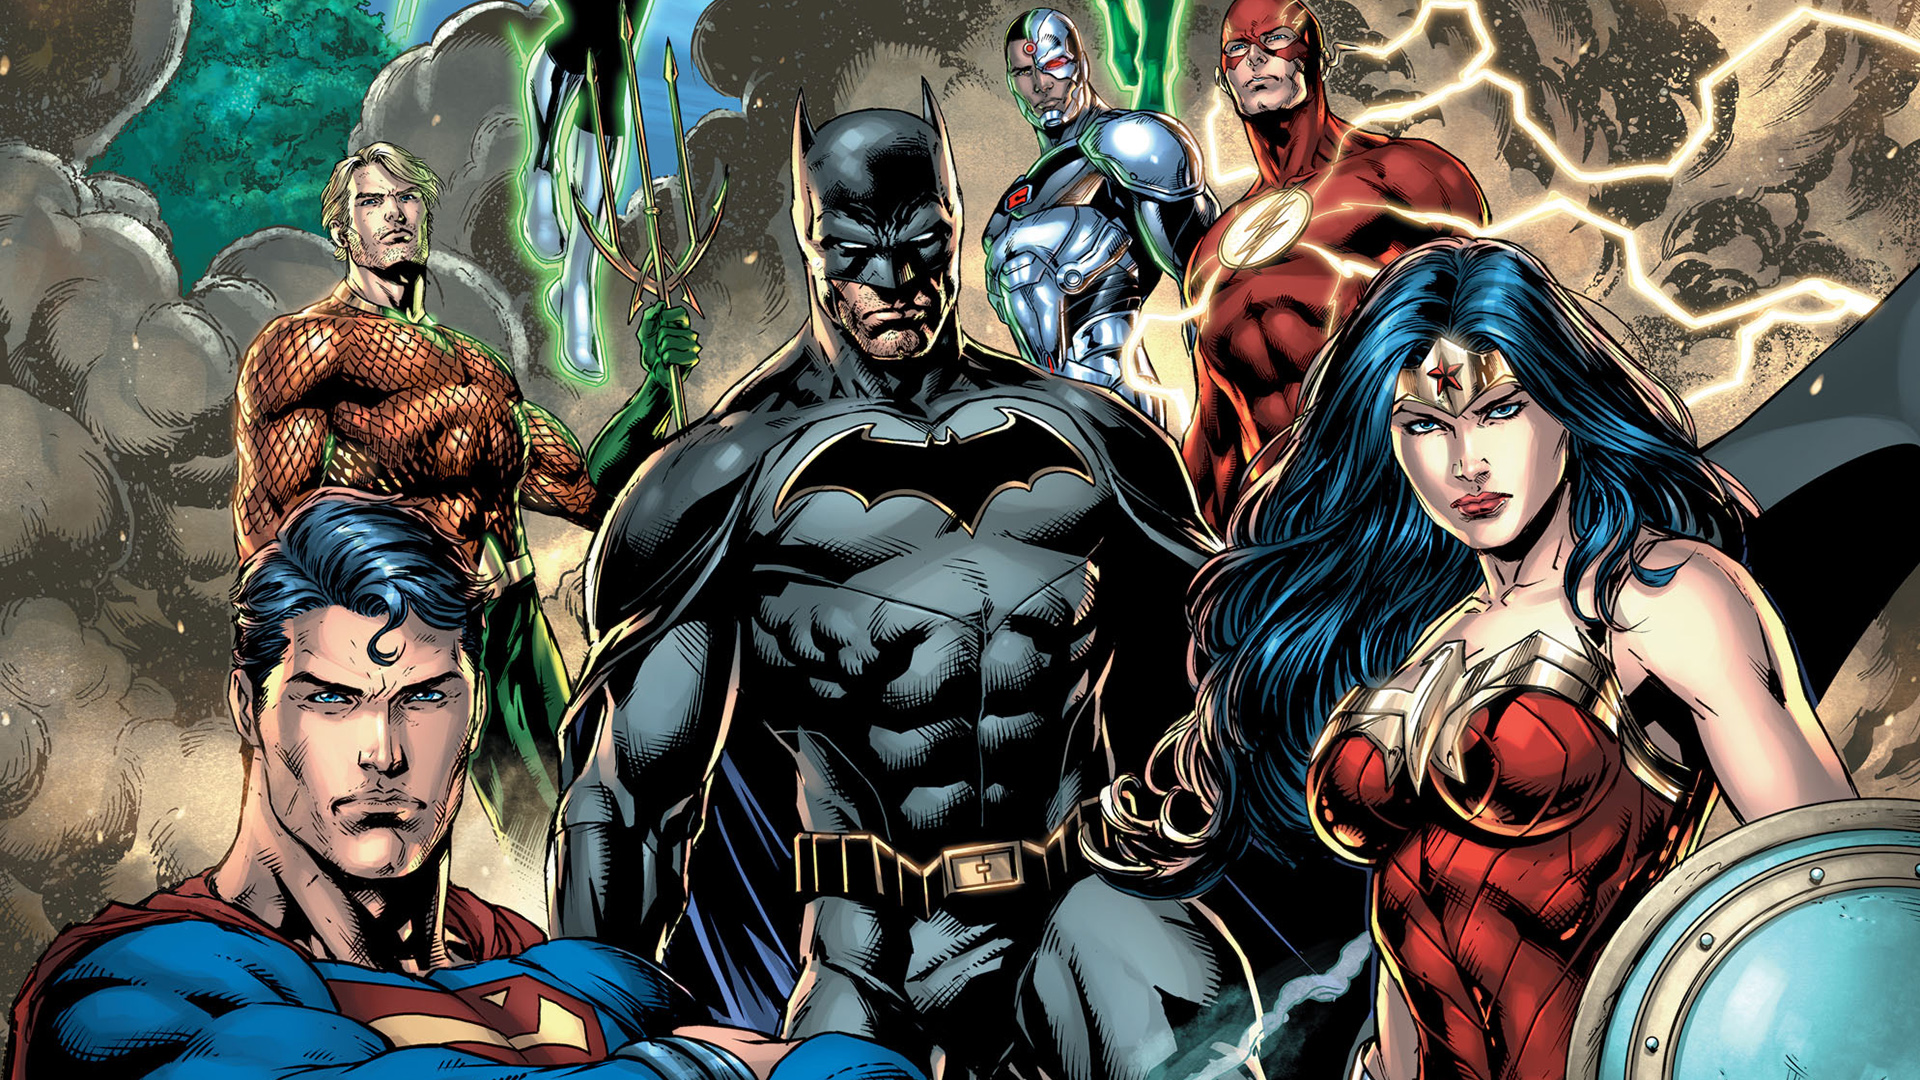 Justice league dc comic art hd superheroes 4k wallpapers images backgrounds photos and pictures - Dc characters wallpaper hd ...